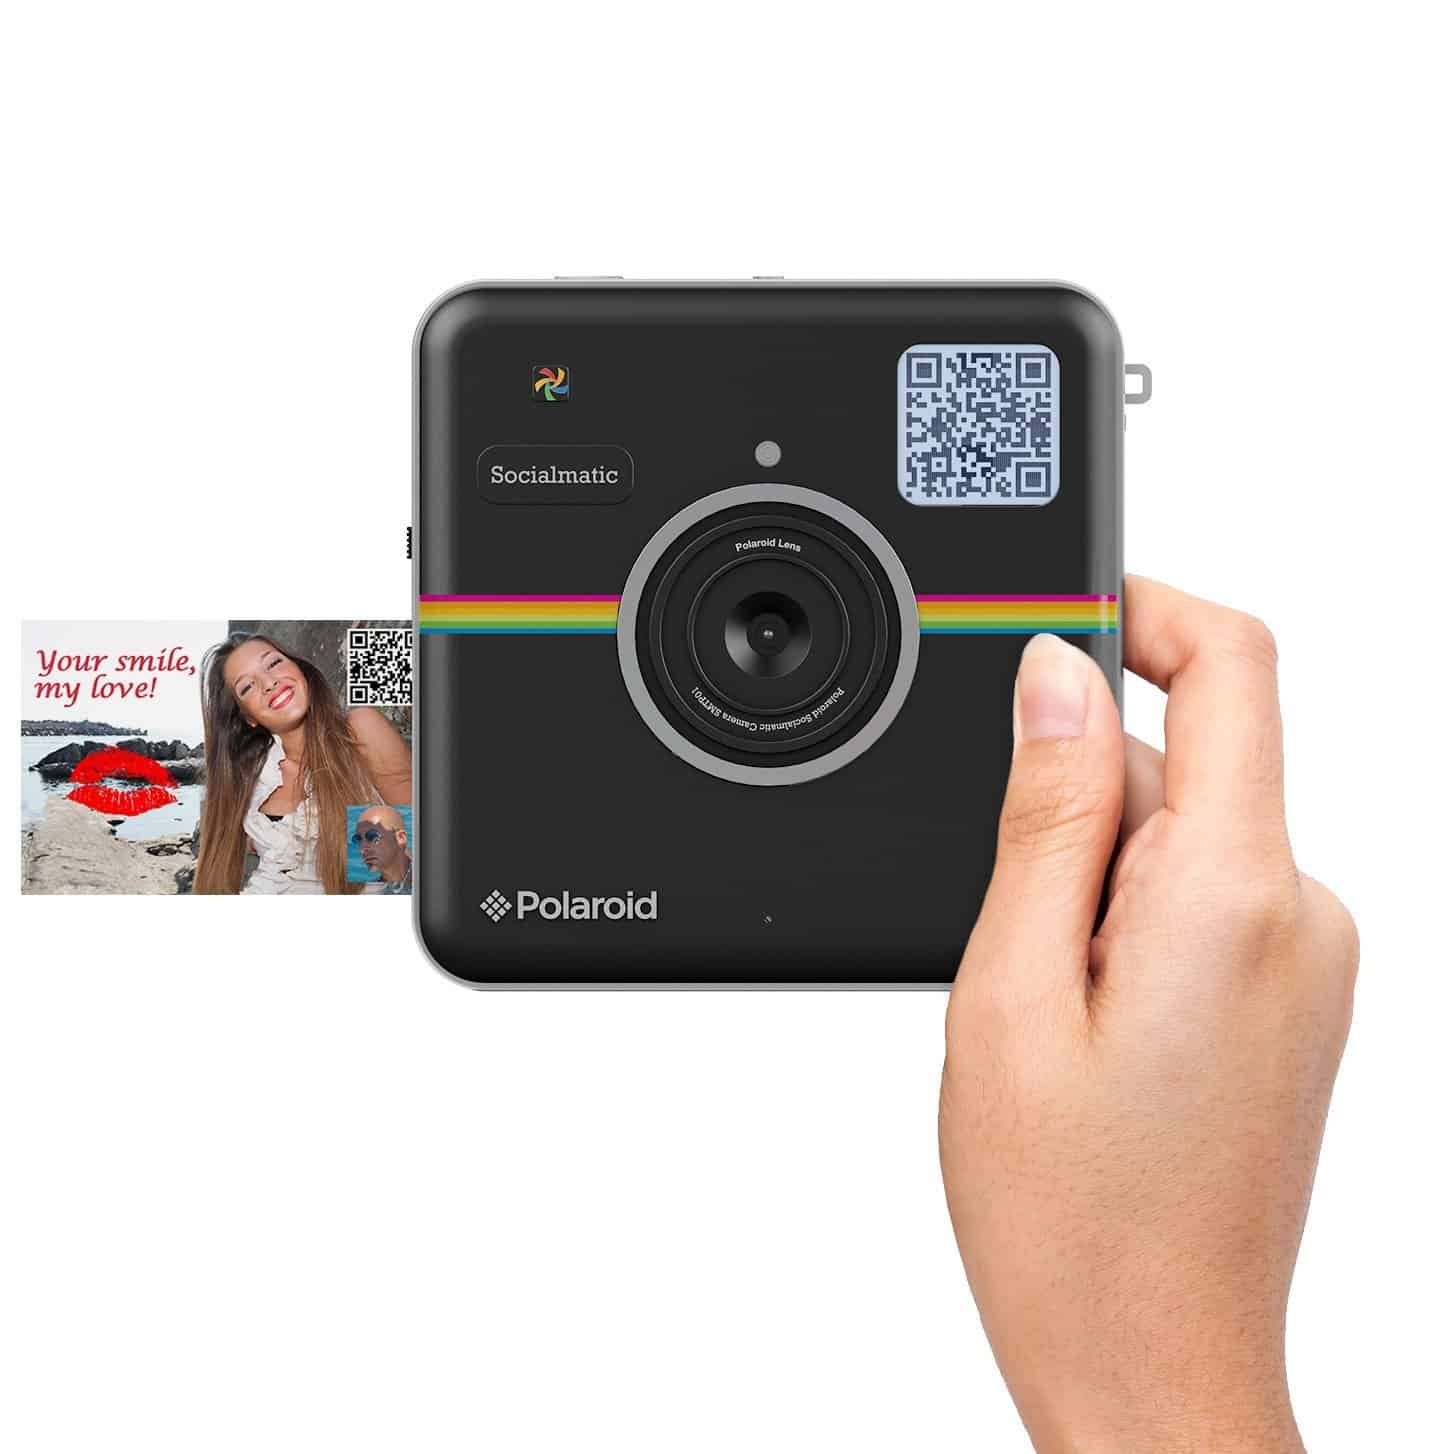 Polaroid Socialmatic Instant Digital Camera Black Cool Stuff to Buy